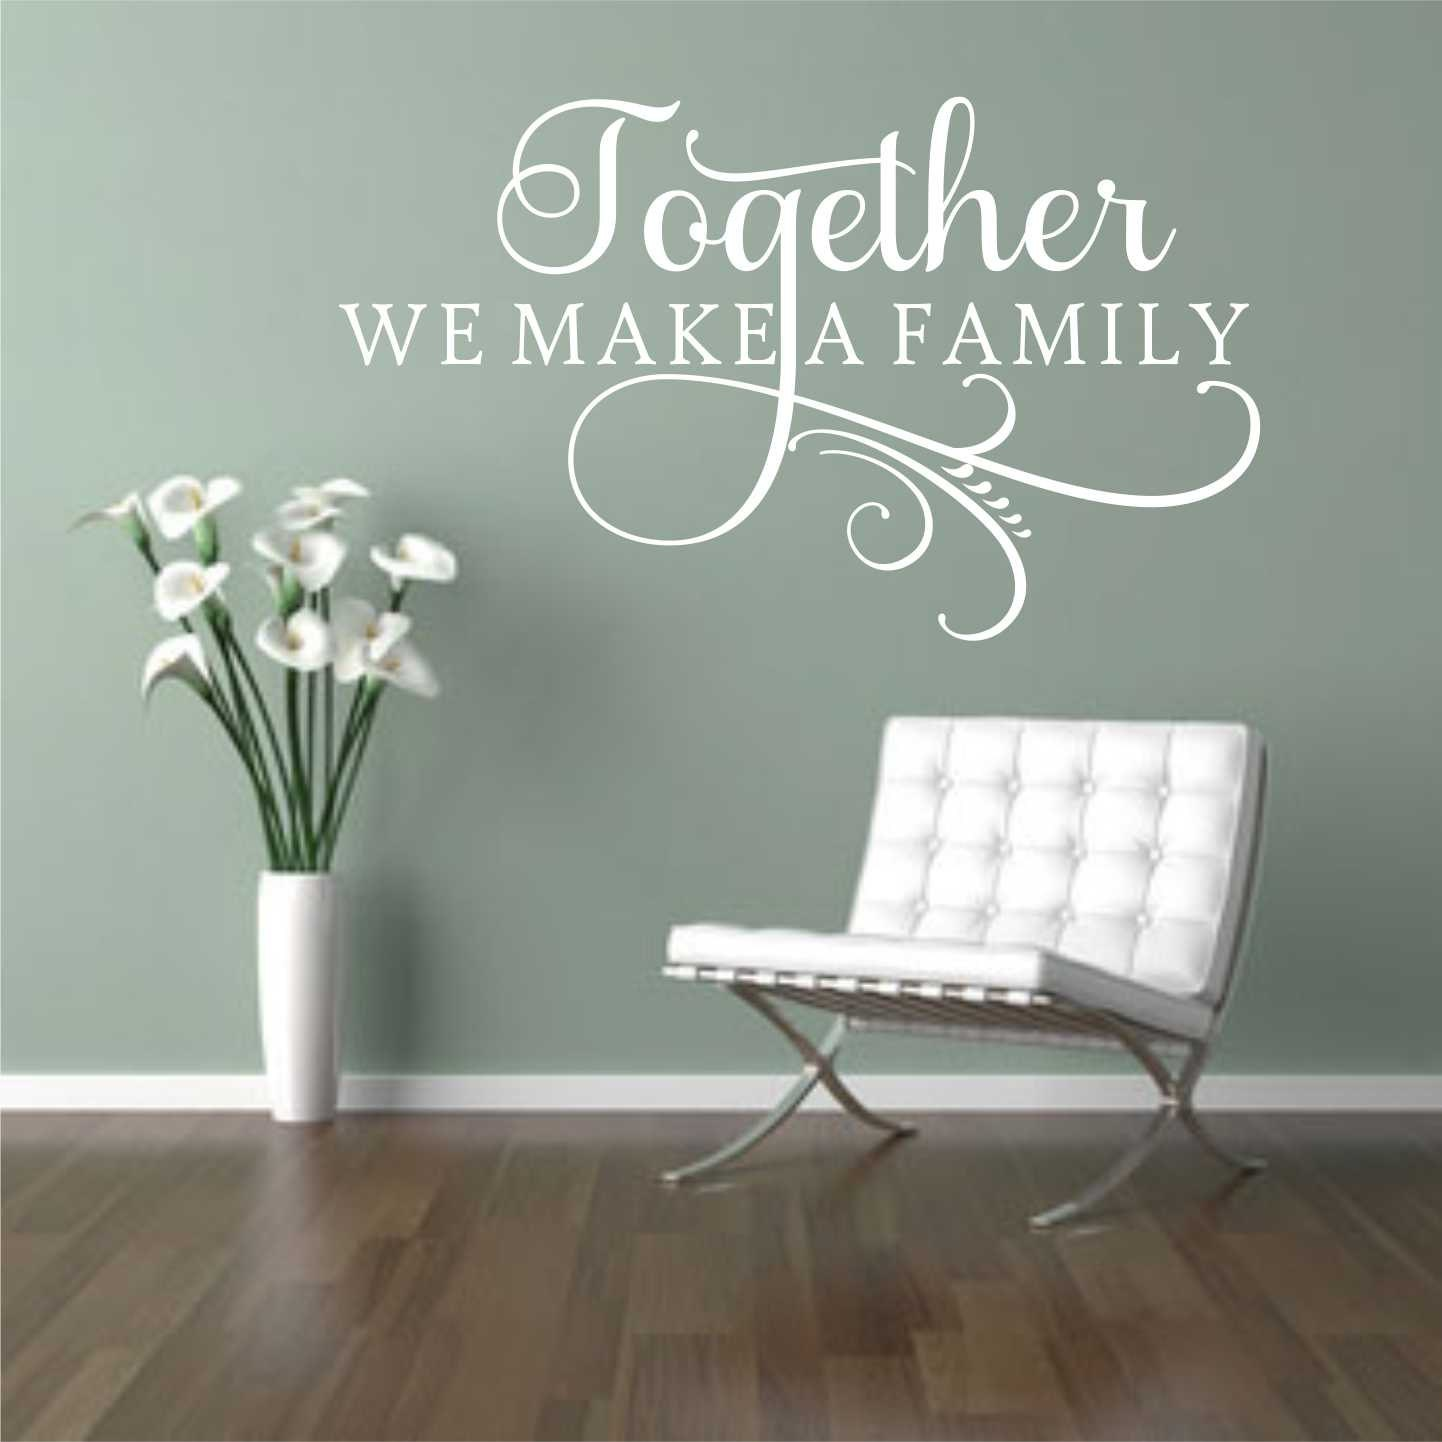 Family wall decal roselawnlutheran together make family decal vinyl wall lettering vinyl wall decals vinyl decals amipublicfo Choice Image